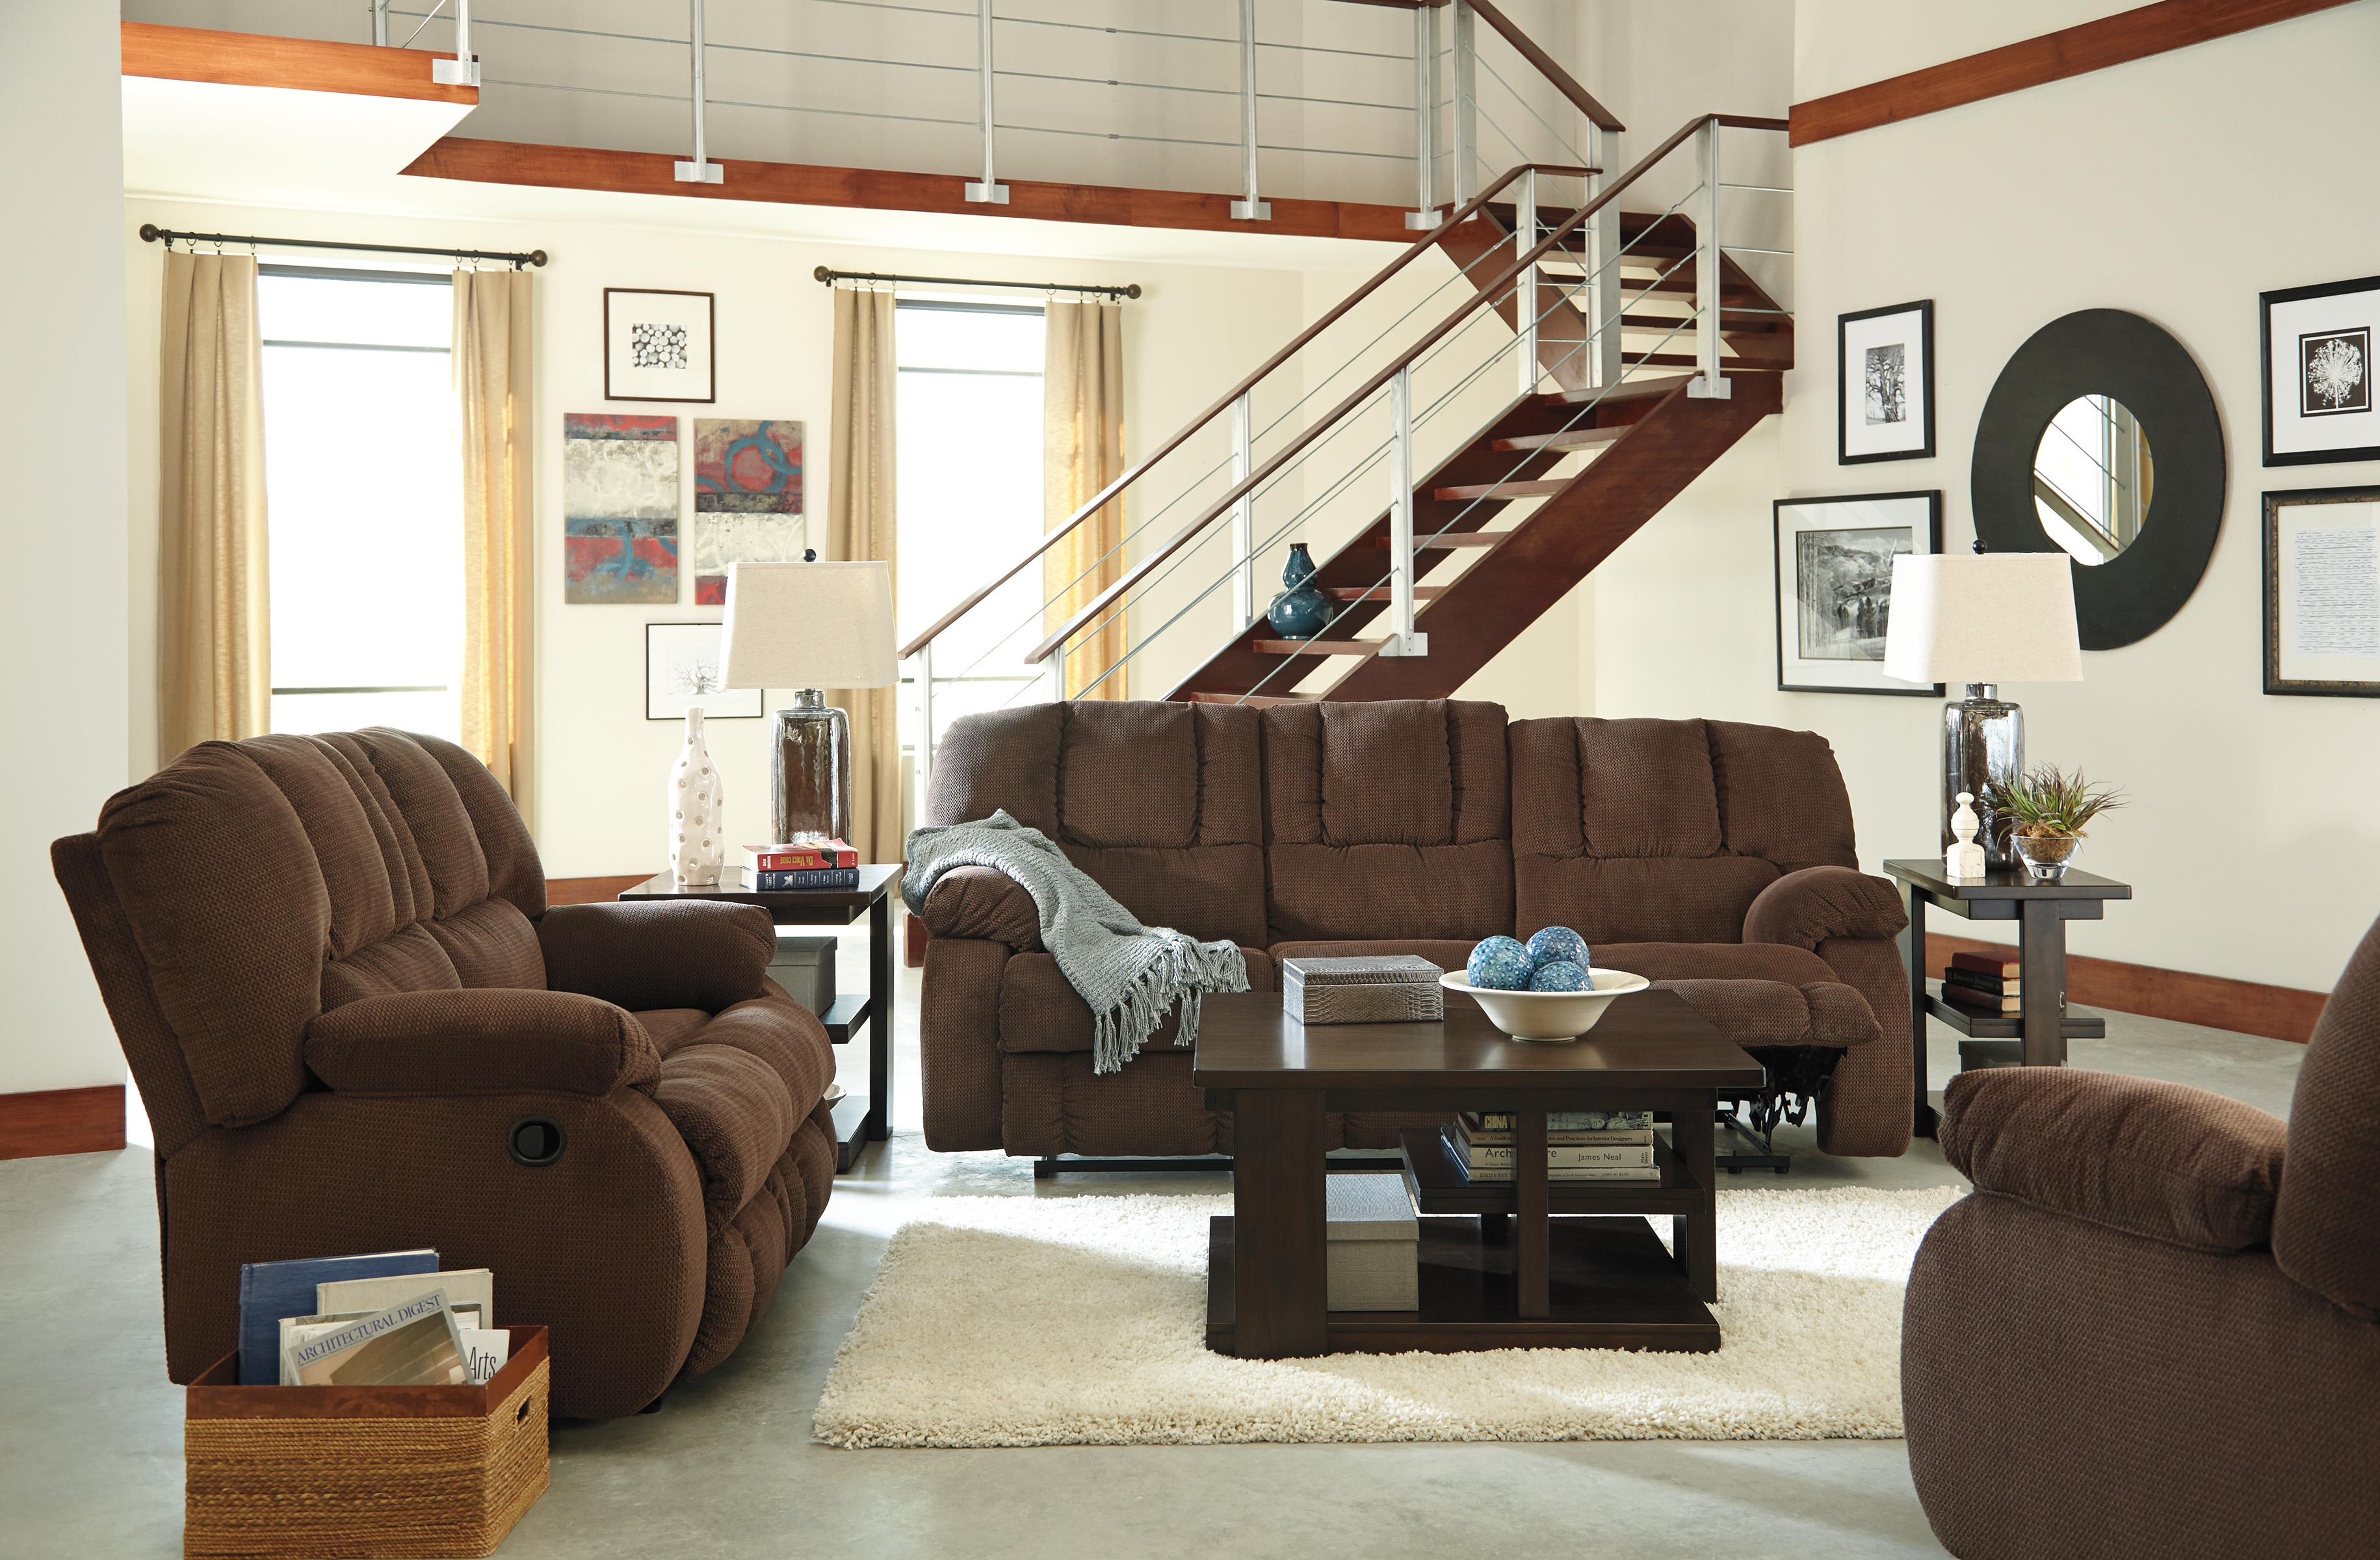 Benchcraft Roan Reclining Living Room Group - Item Number: 38604 Living Room Group 2